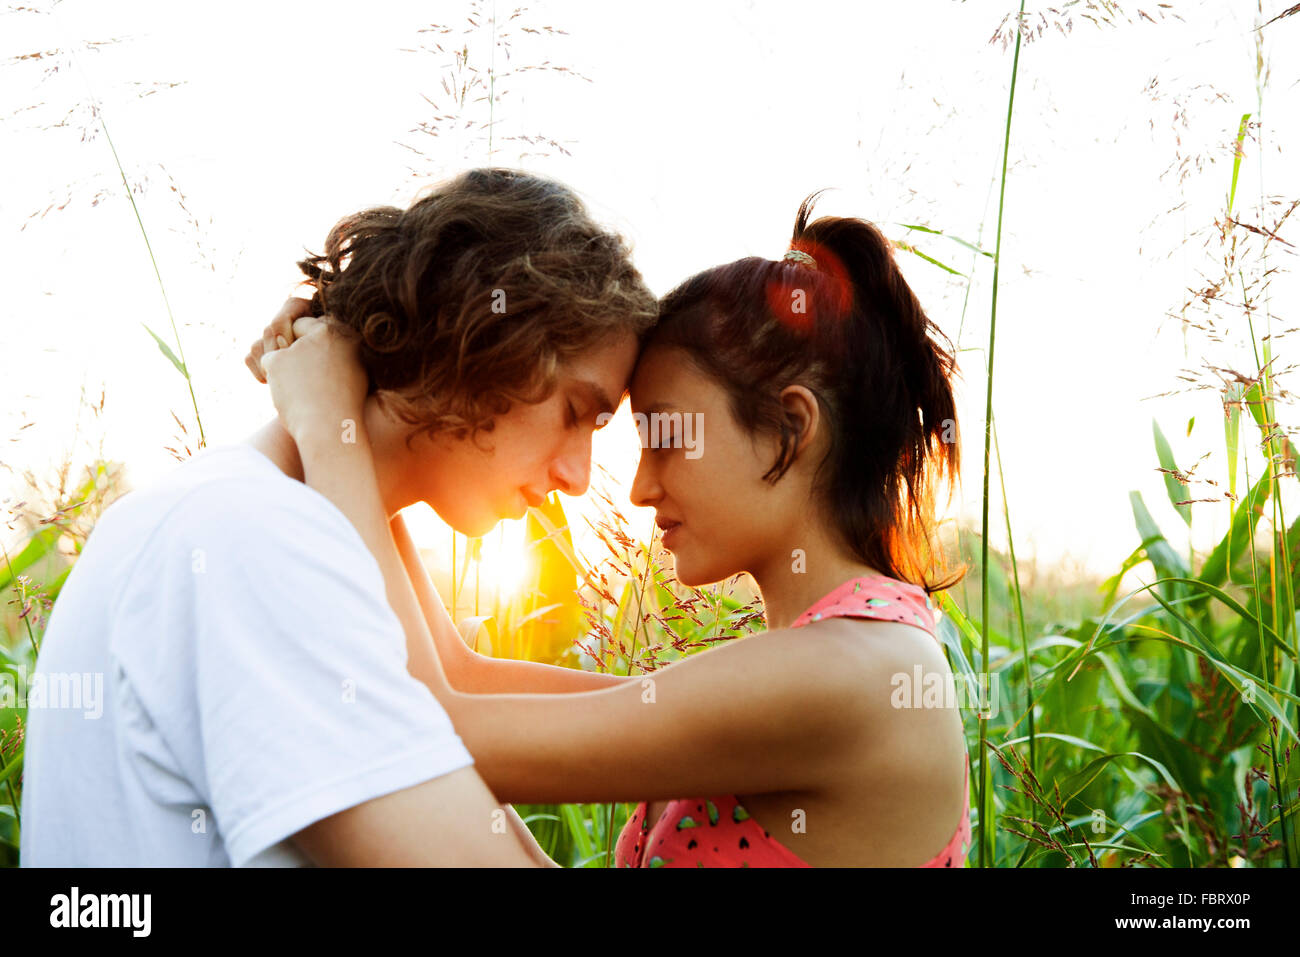 Young couple embracing, touching foreheads Stock Photo